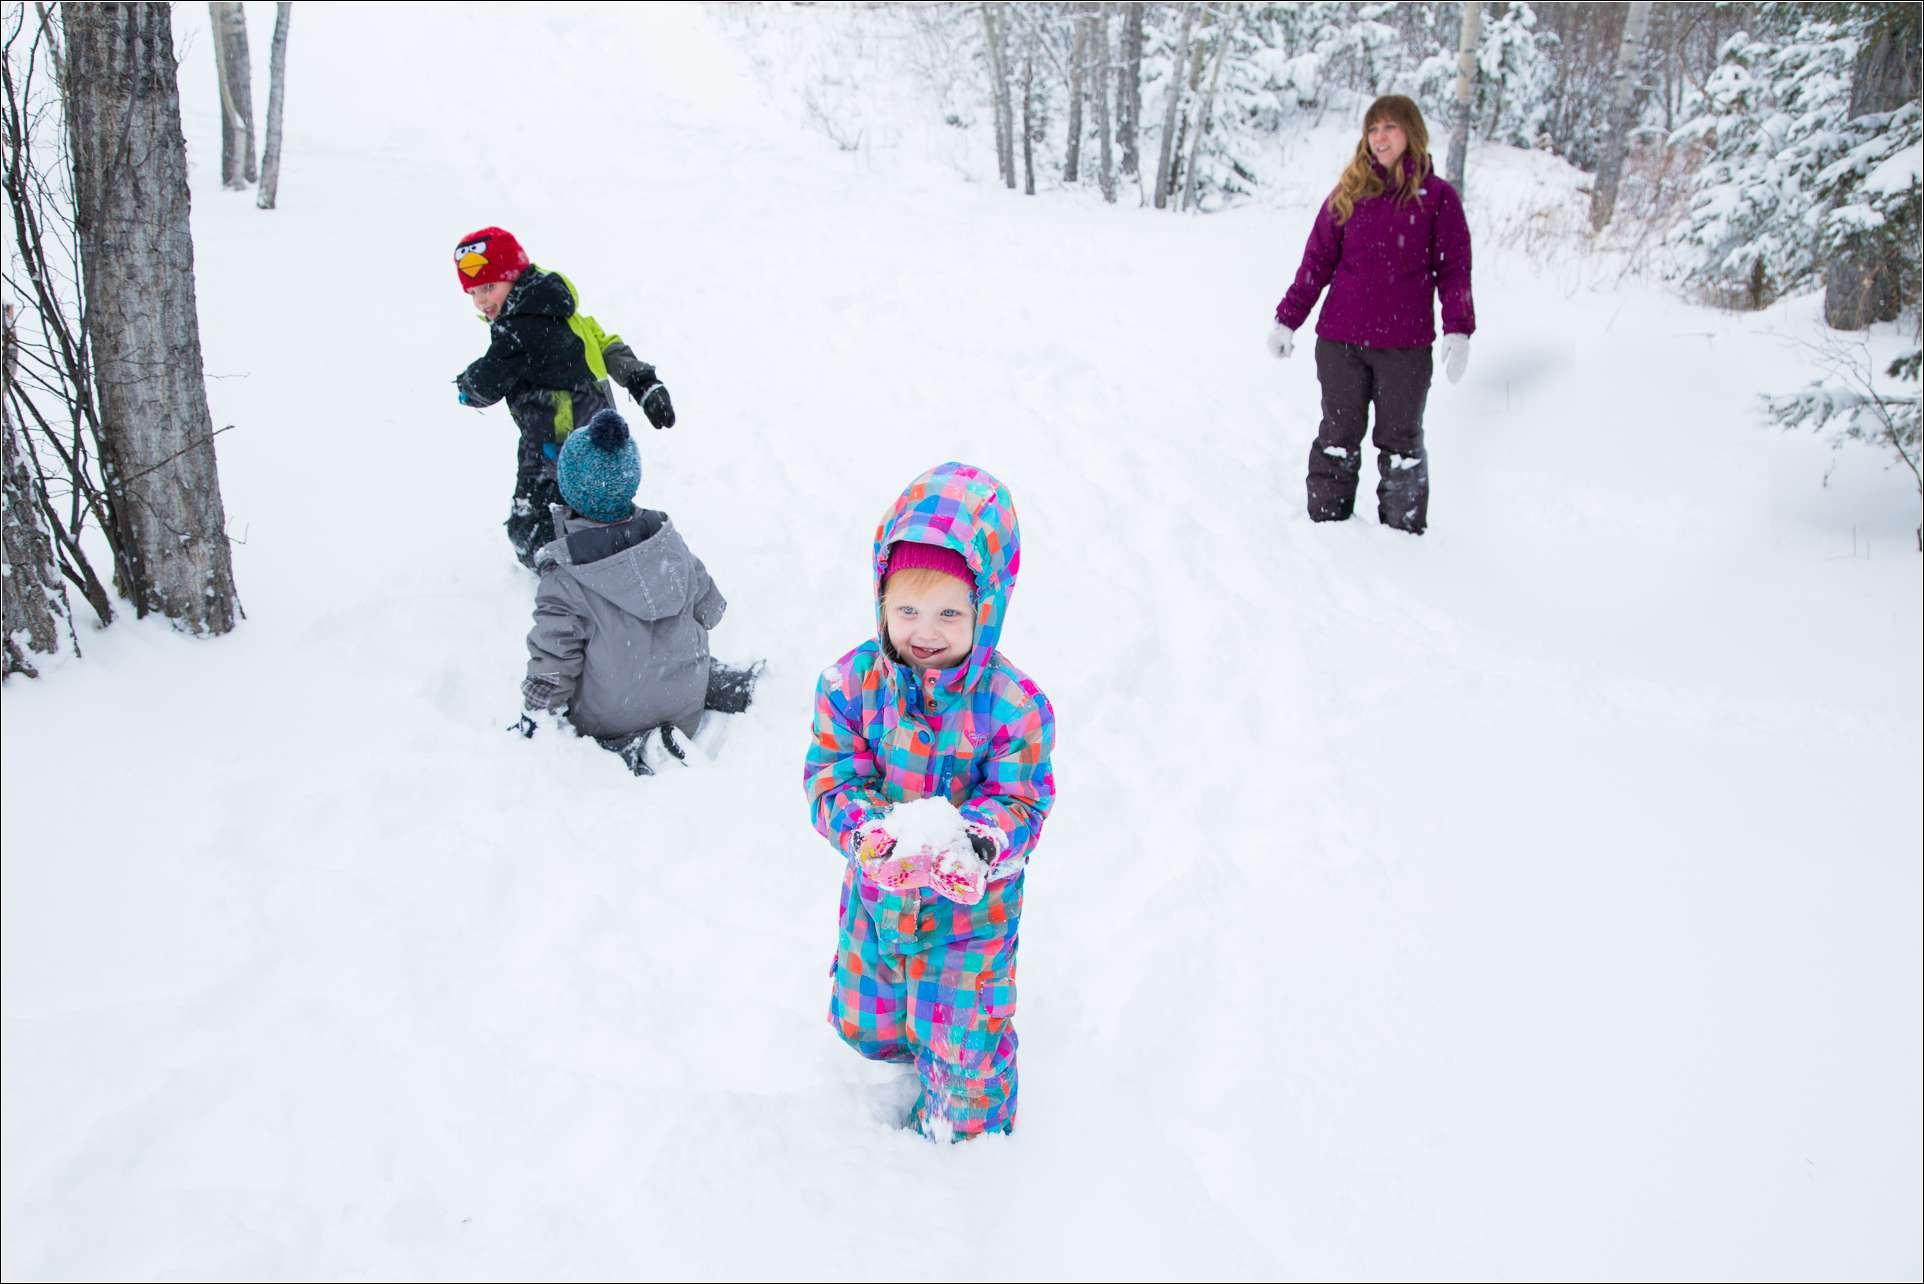 A classic game all kids love to play during winter. Snow ball fight will surely be a fun activity for all.